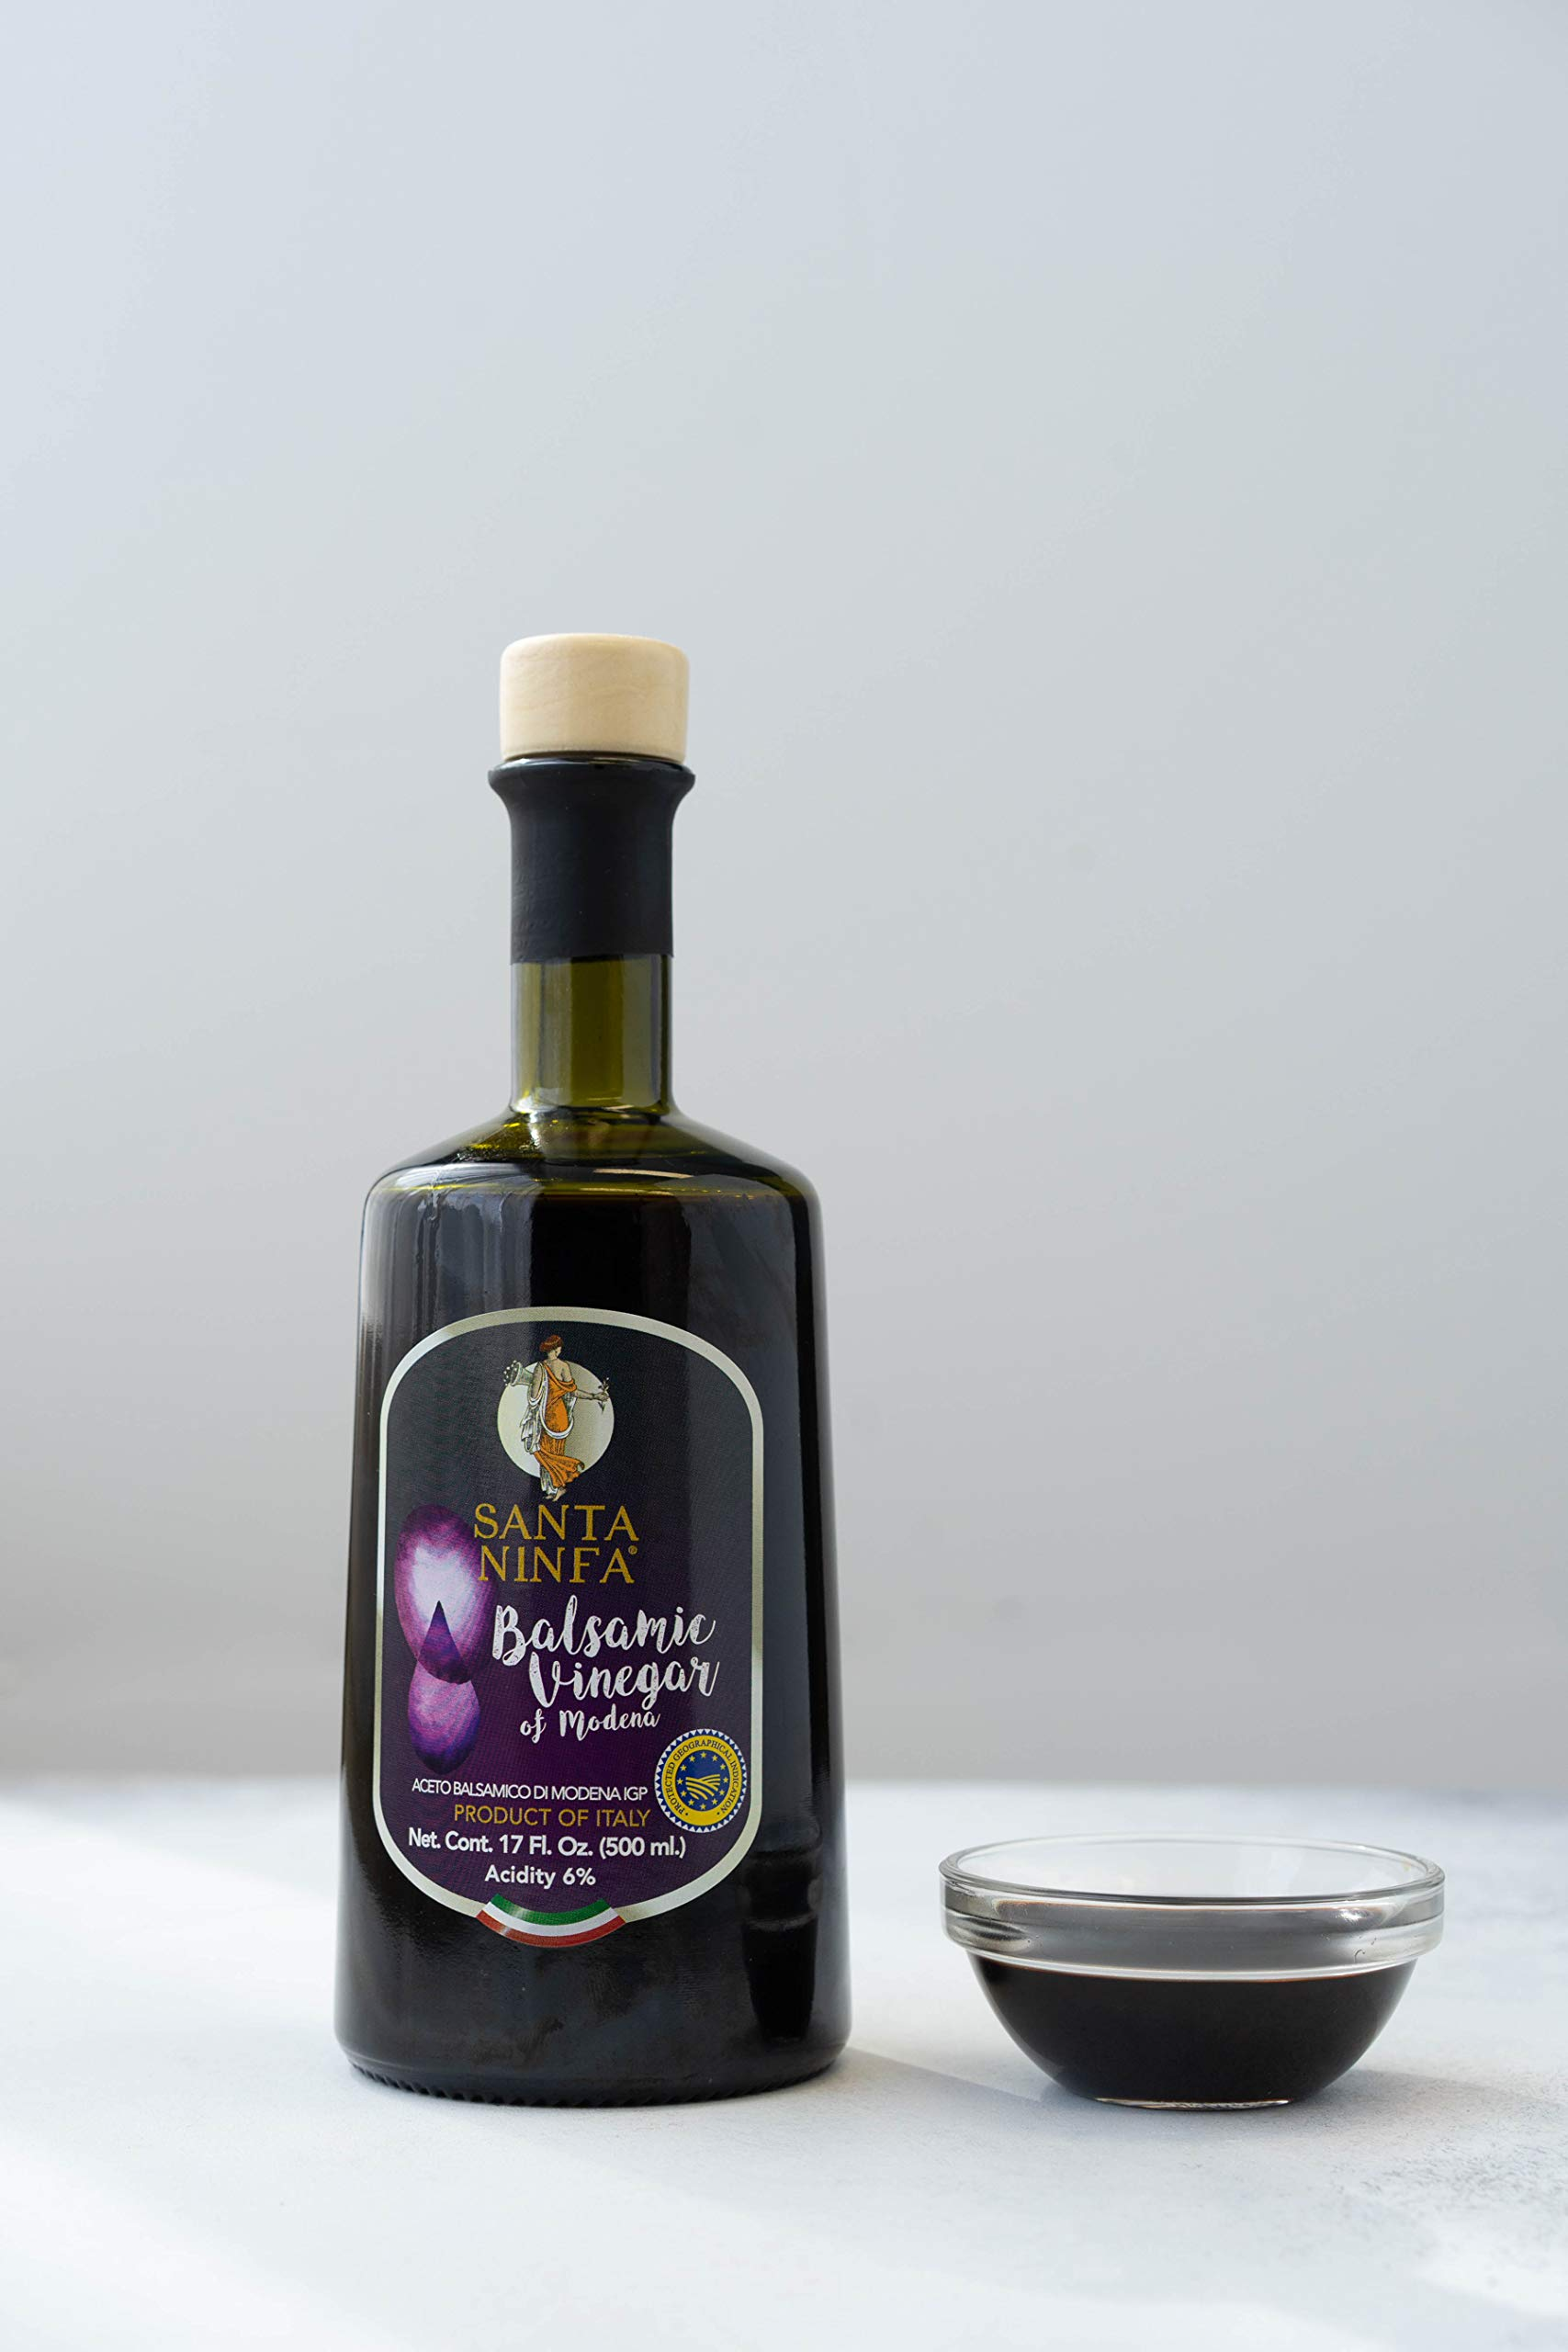 Santa Ninfa Balsamic Vinegar of Modena IGP, 17 Fl Oz Glass Bottle, (Pack of 2) 10 Ships in Amazon Certified Frustration-Free Packaging Pack of two Balsamic Vinegar of Modena, Italy, 17 oz Glass Bottles This Balsamic vinegar is matured in wooden casks to achieve a complex flavor balancing sweetness and acidity.